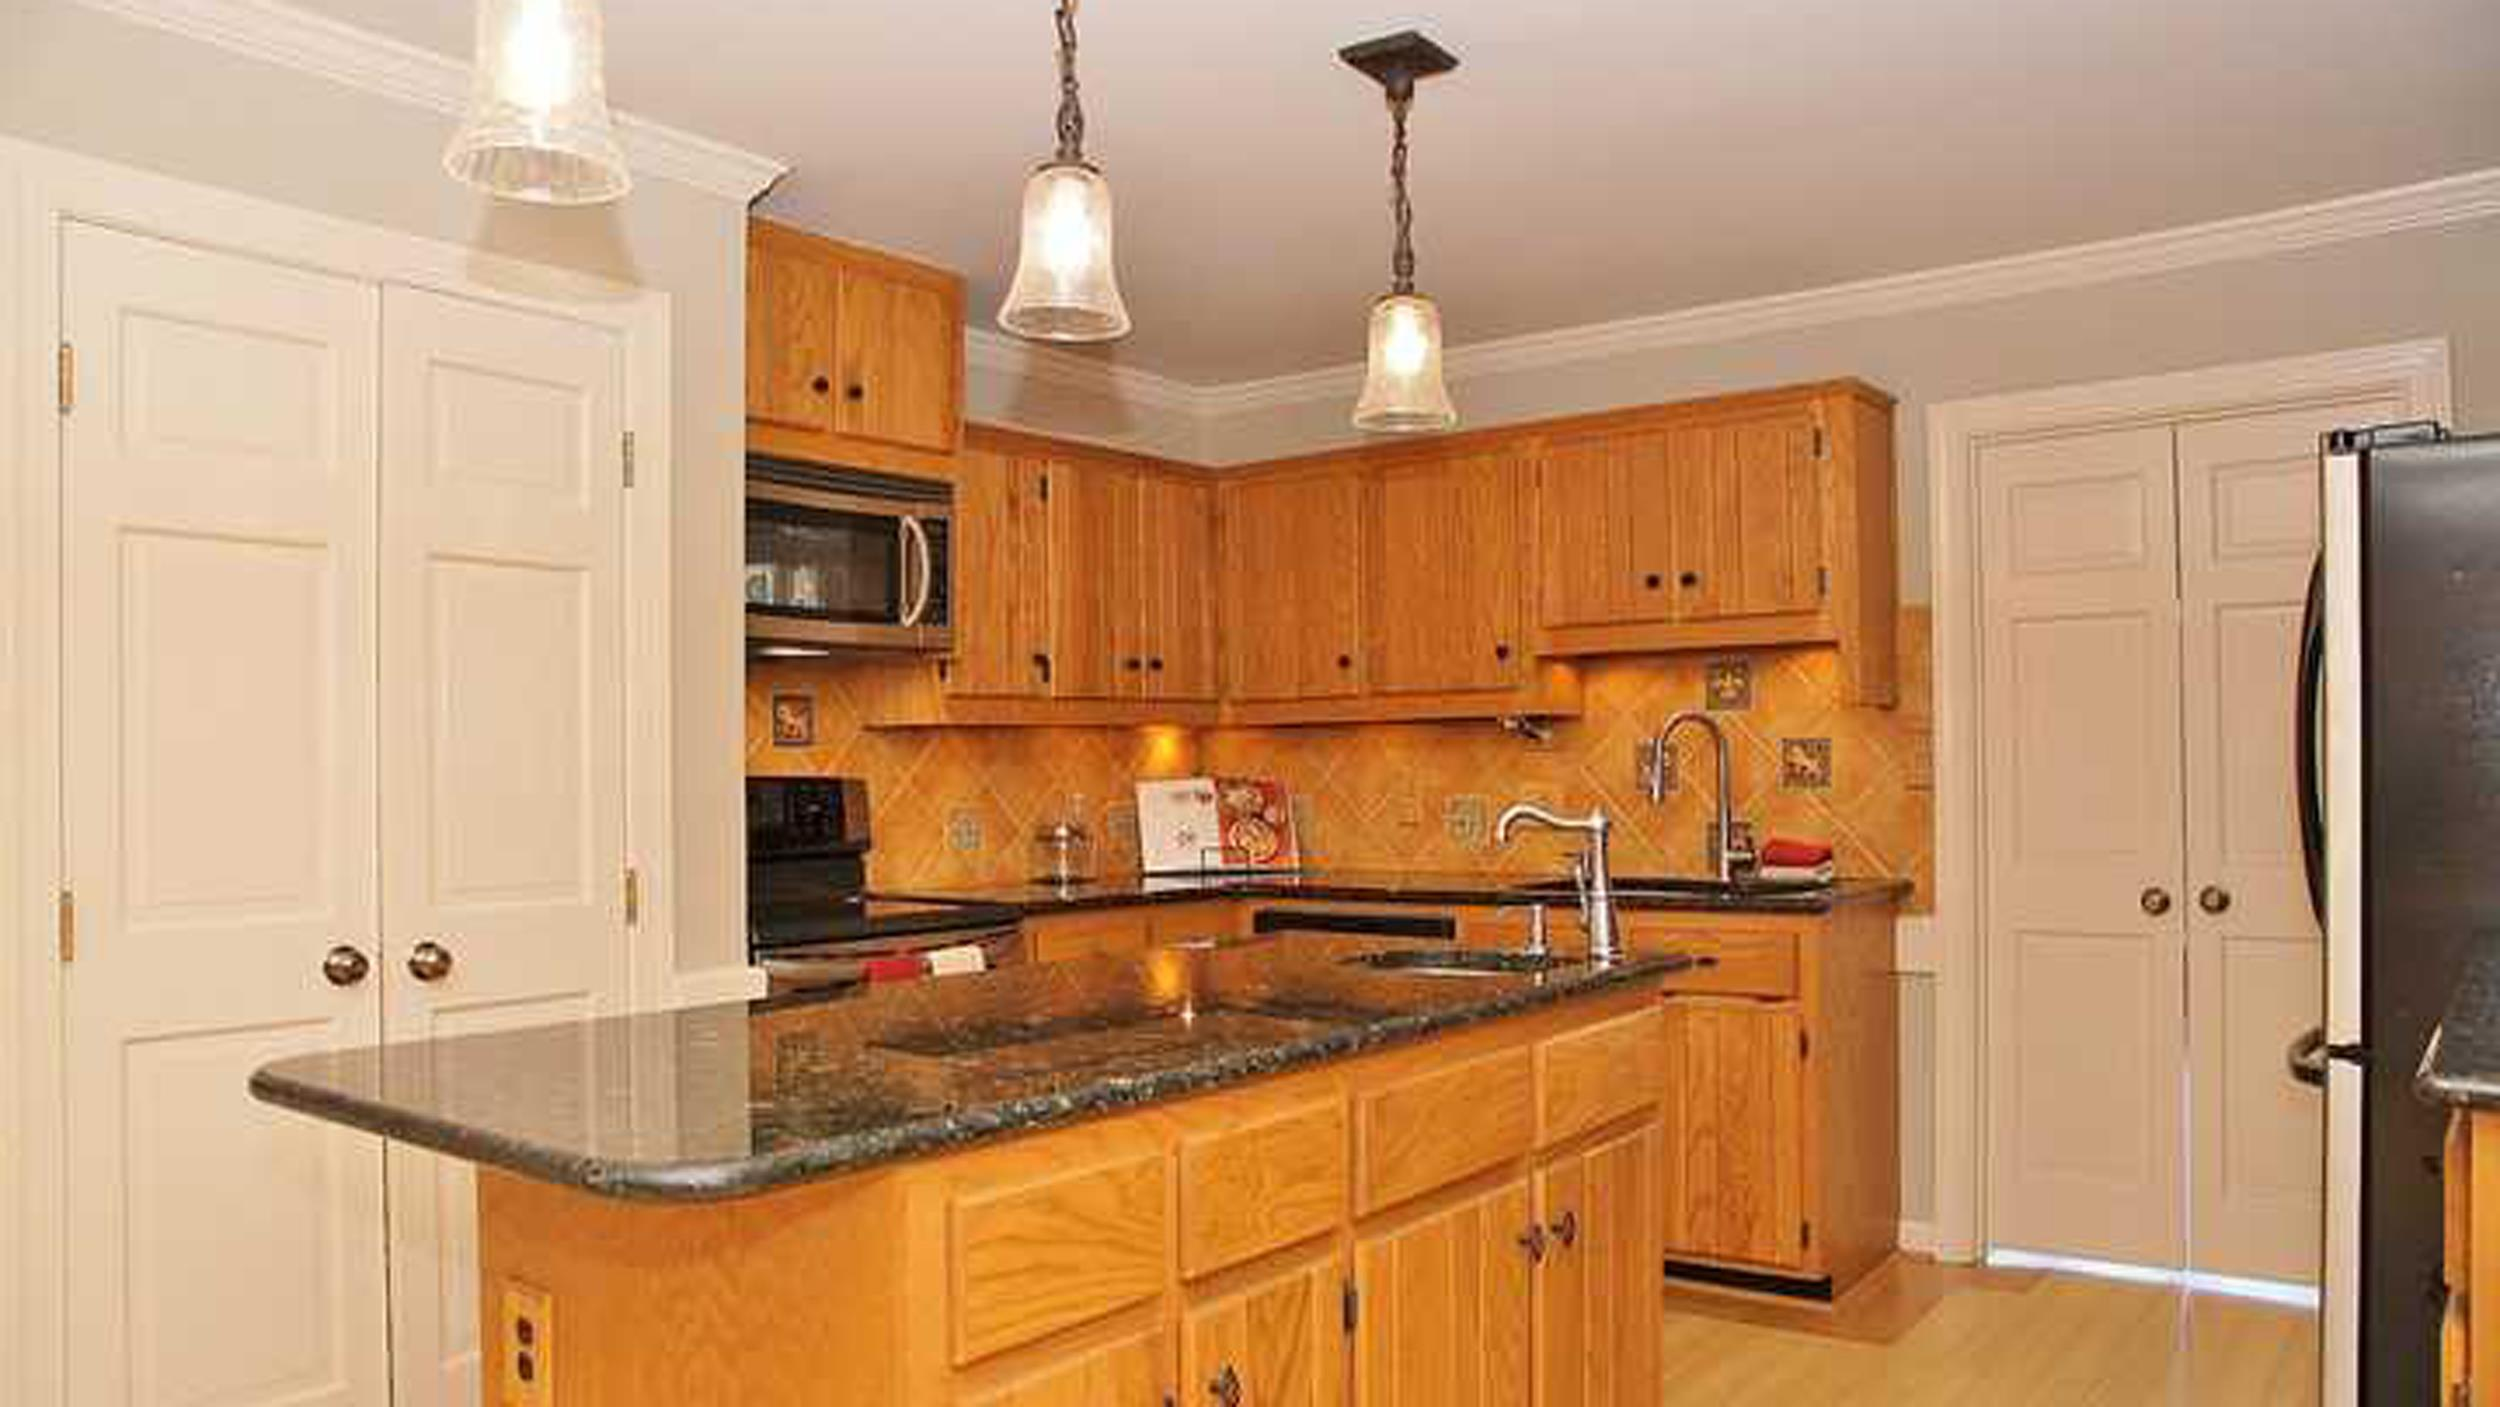 DIY Kitchen: See What This Kitchen Looks Like After A $700 Makeover    TODAY.com